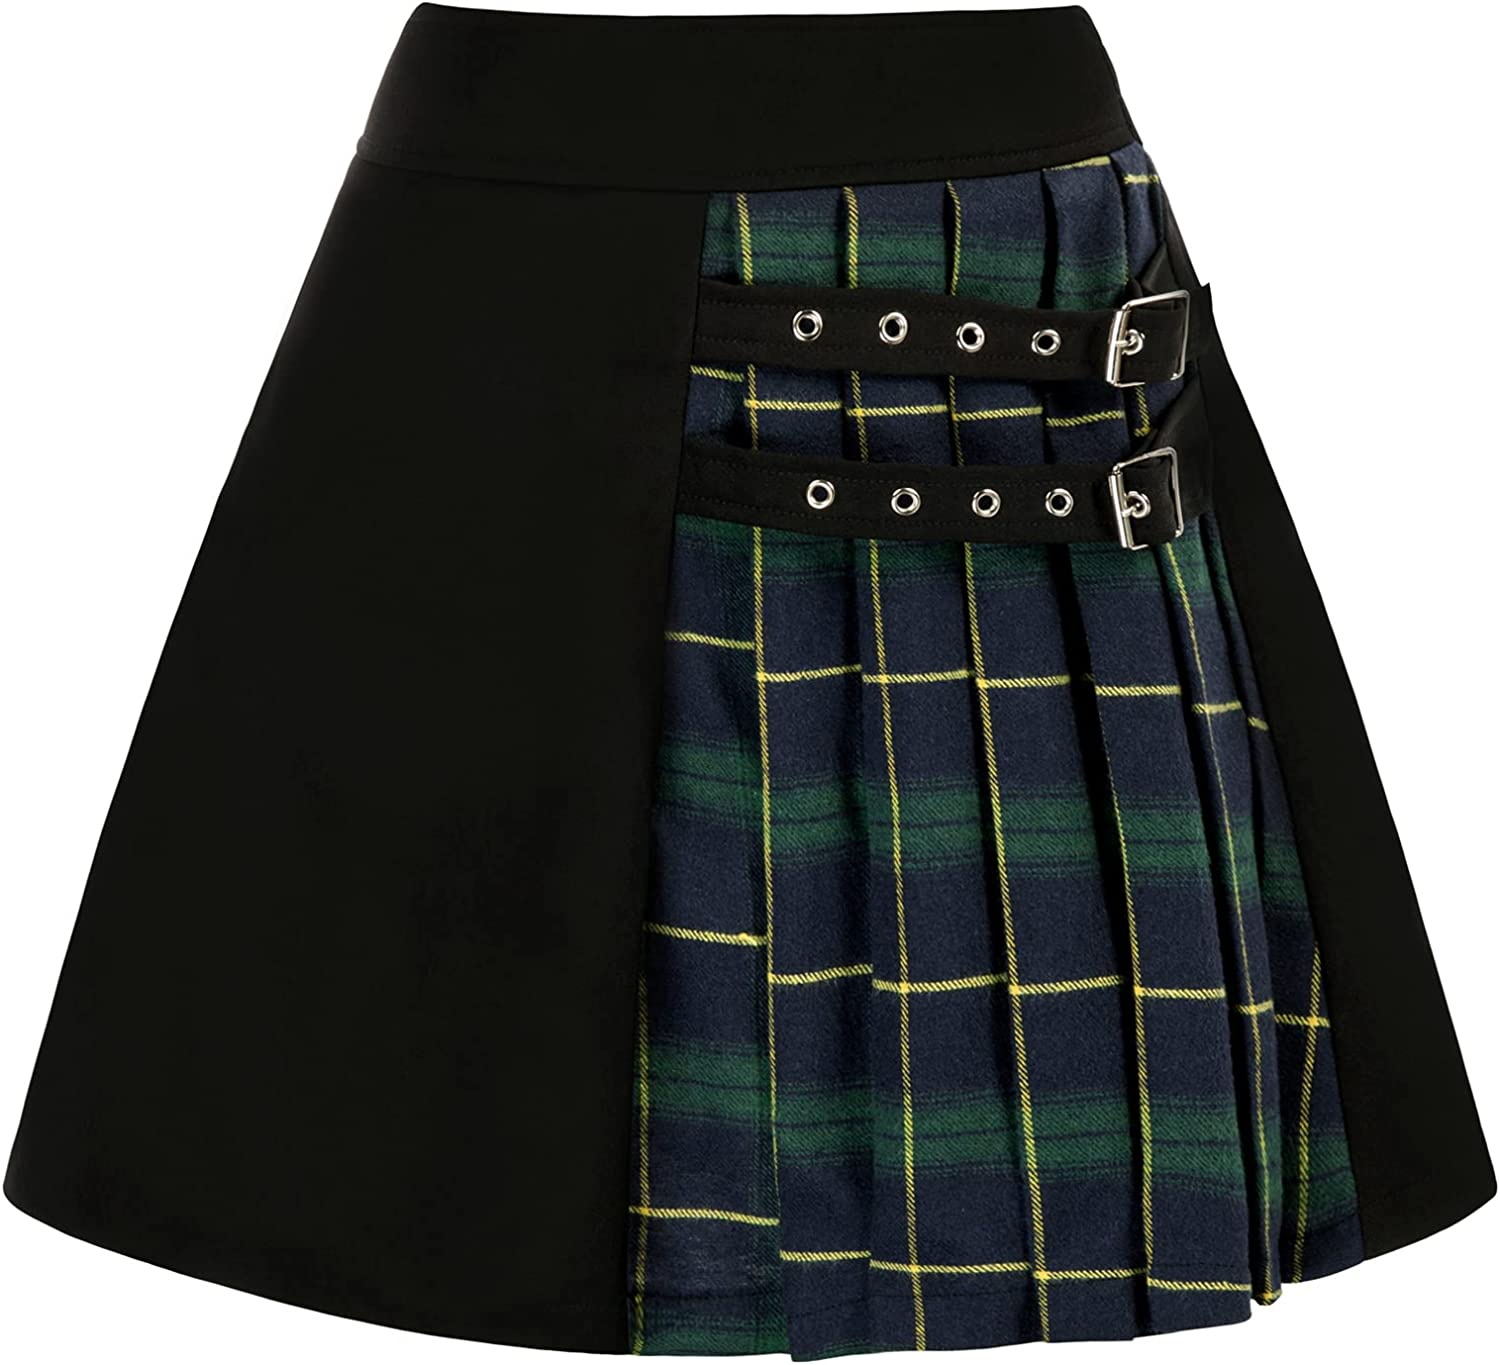 SCARLET DARKNESS Womens 4 years warranty Plaid Mini shipfree Skirt Waisted Elastic Casual